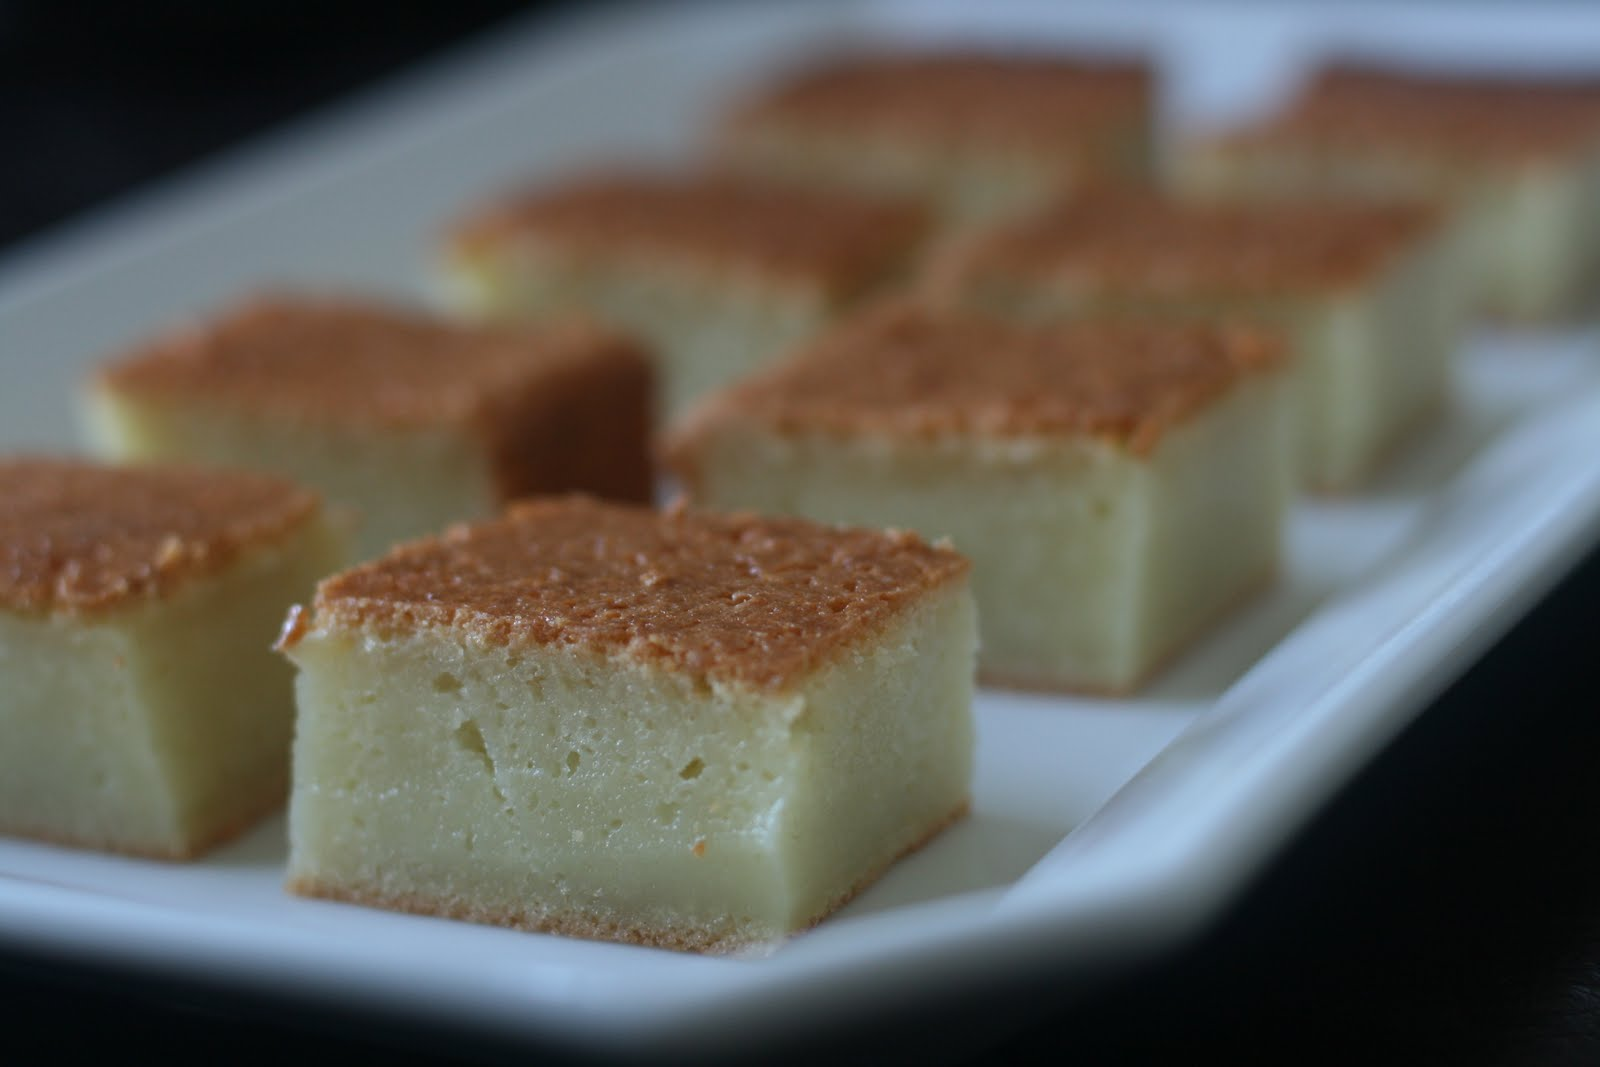 Mochi Cake: Proof that being competitive pays off